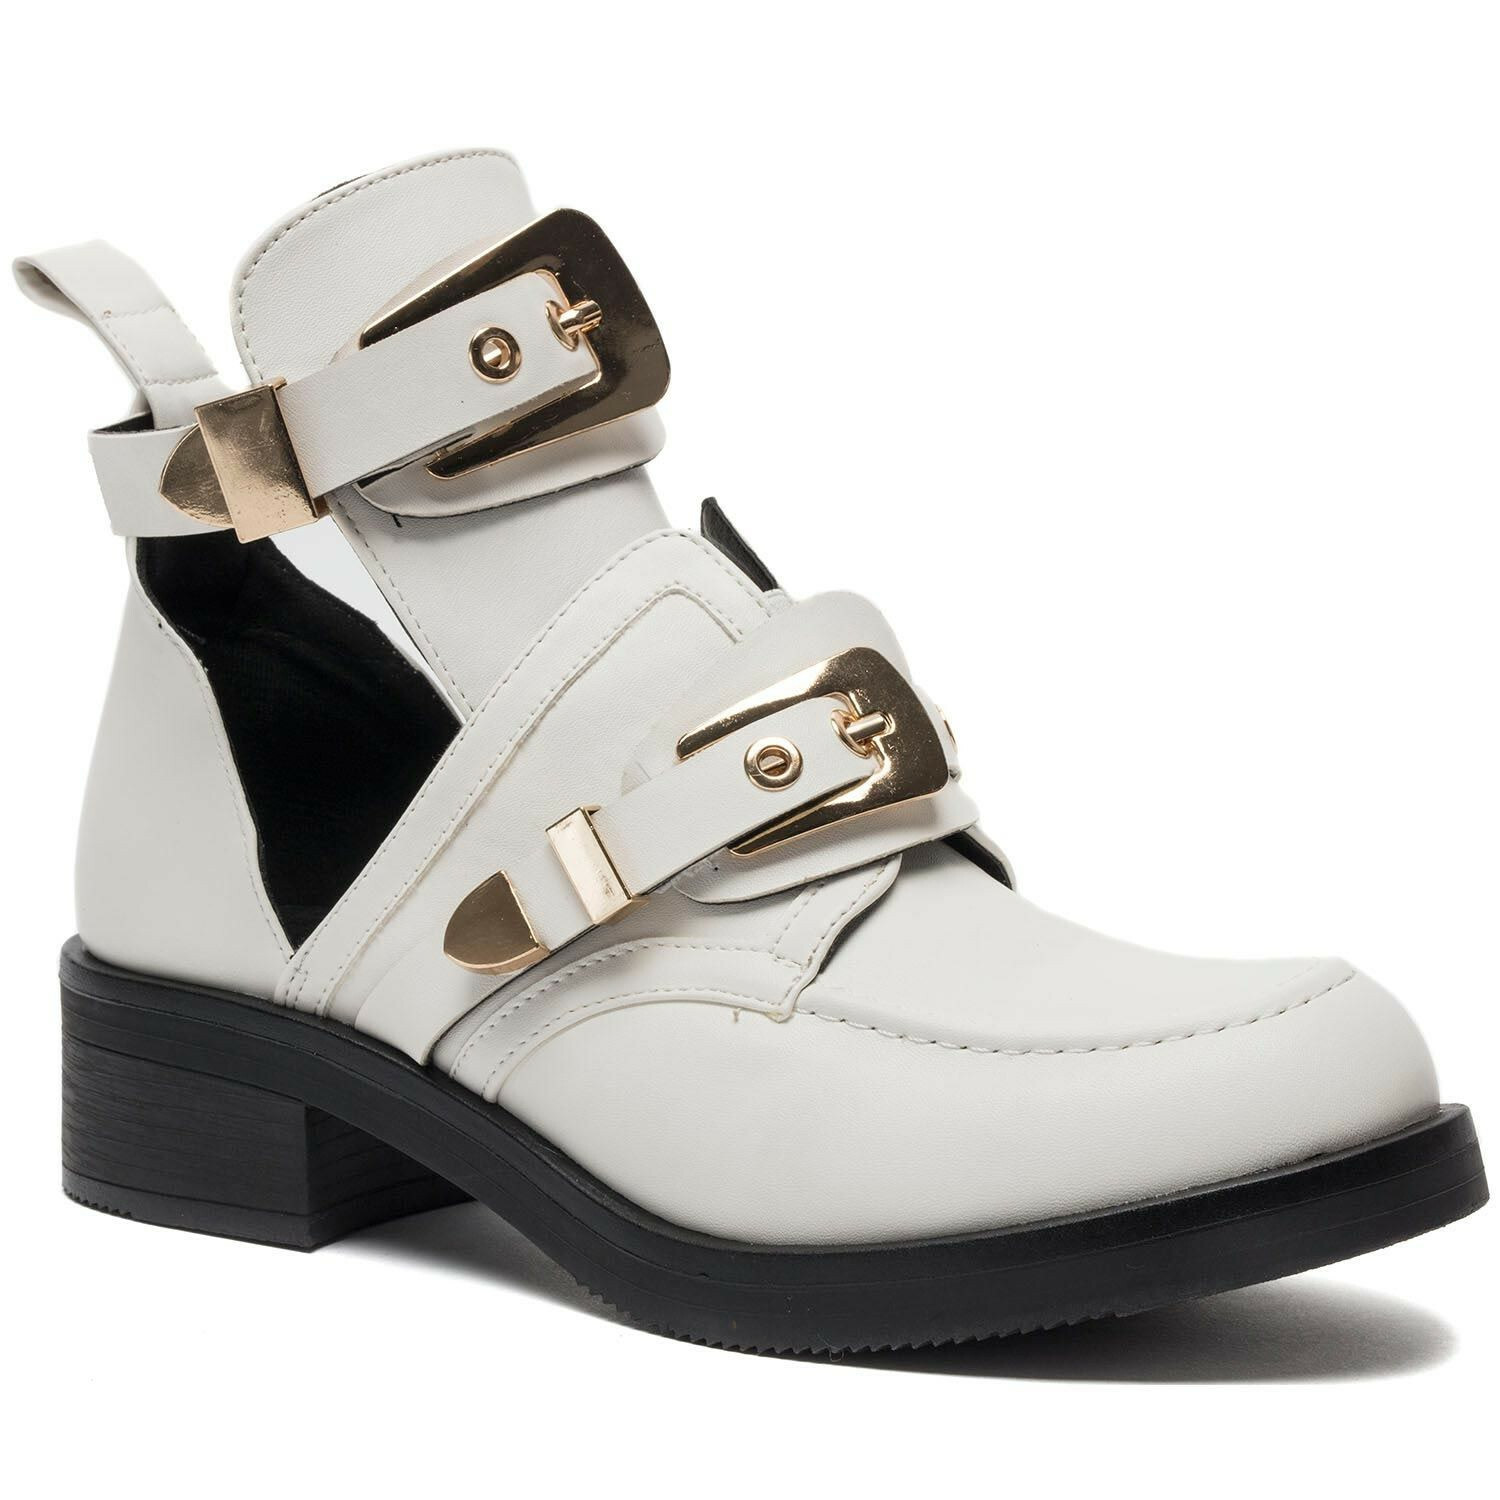 WHITE 'N GOLD BUCKLE BOOTS